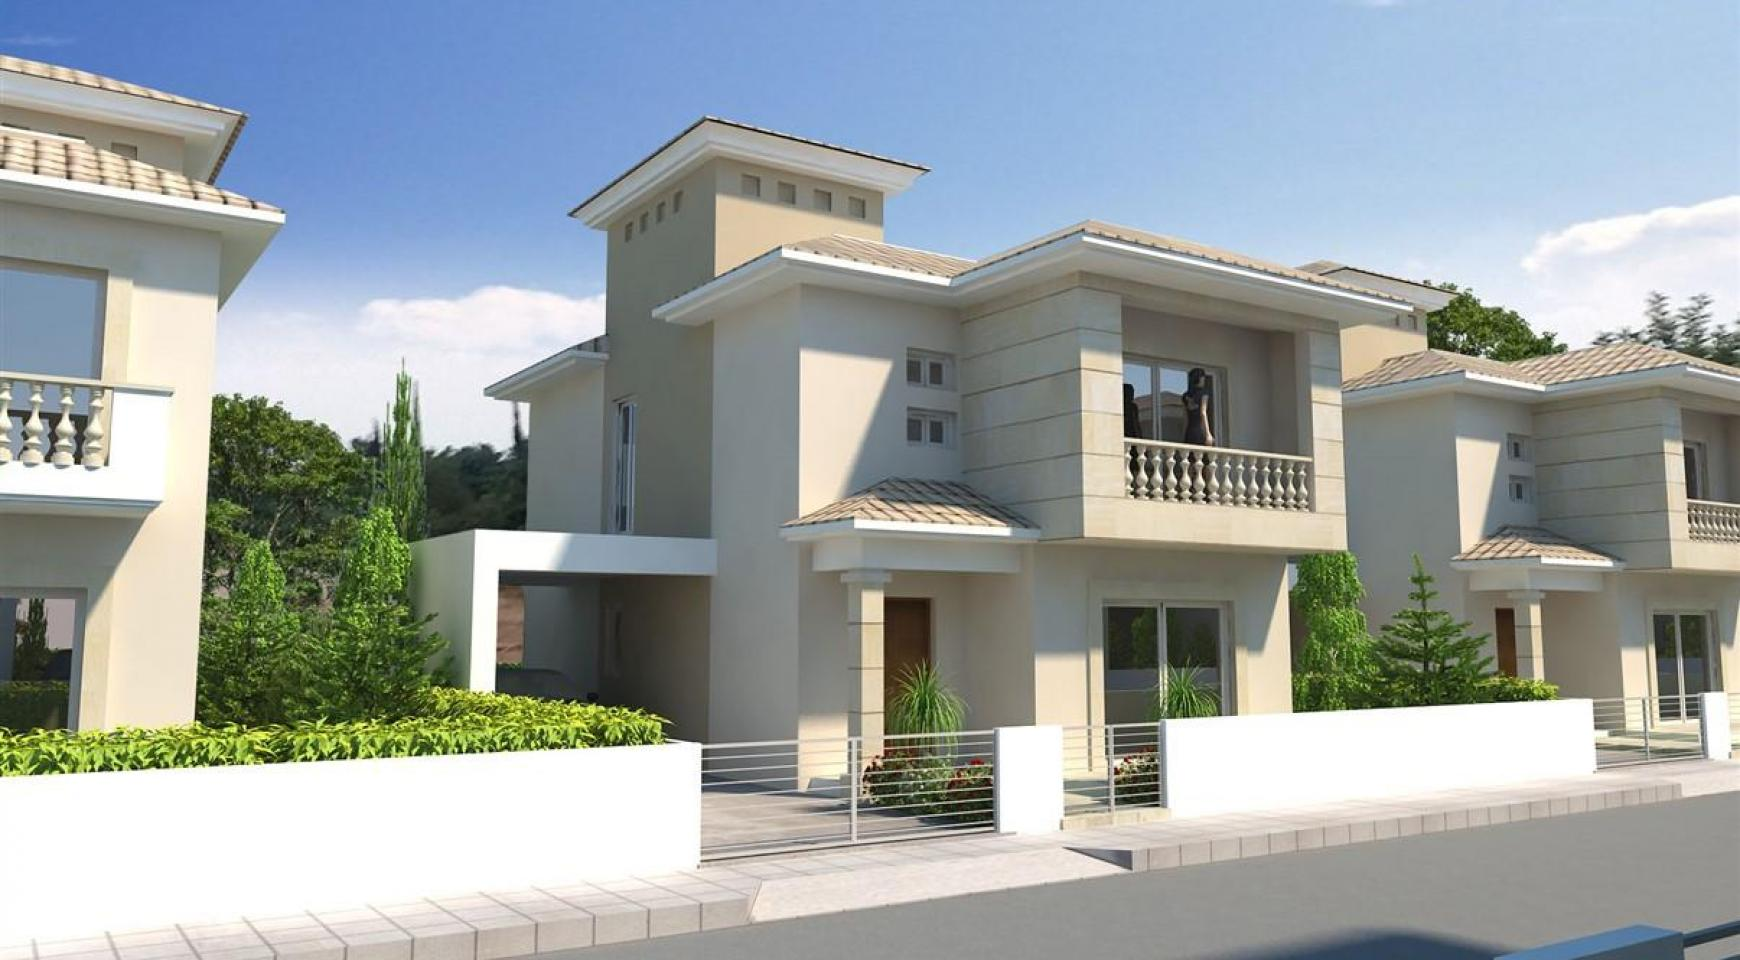 3 Bedroom Villa in New Project in Paphos - 3